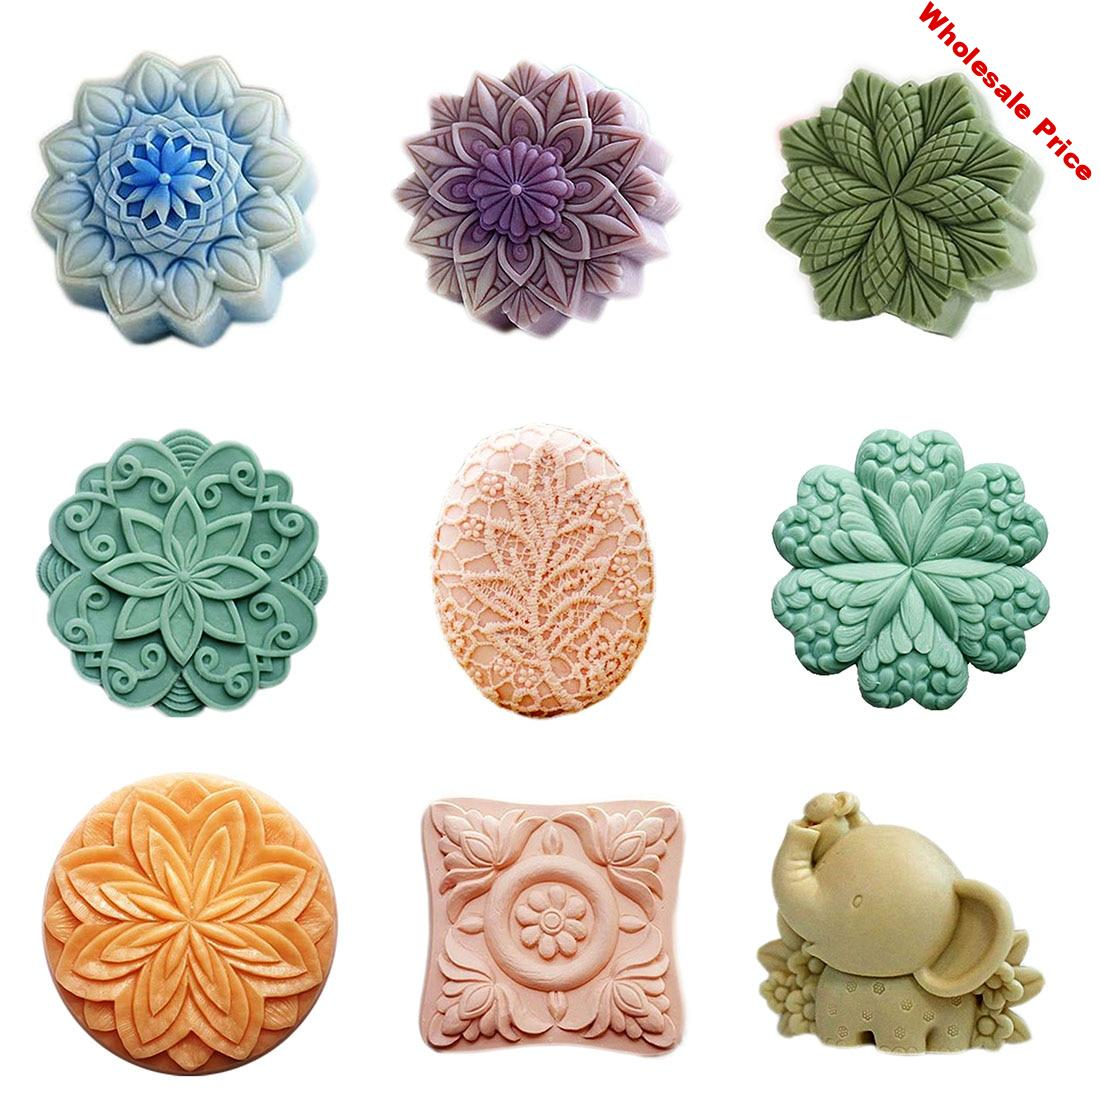 Flower Soap Making  Round Silicone Soap Mold Animal Silicone Soap Molds Oval Soap Mold Bath Bomb Mold Silicone Mold Soap Forms